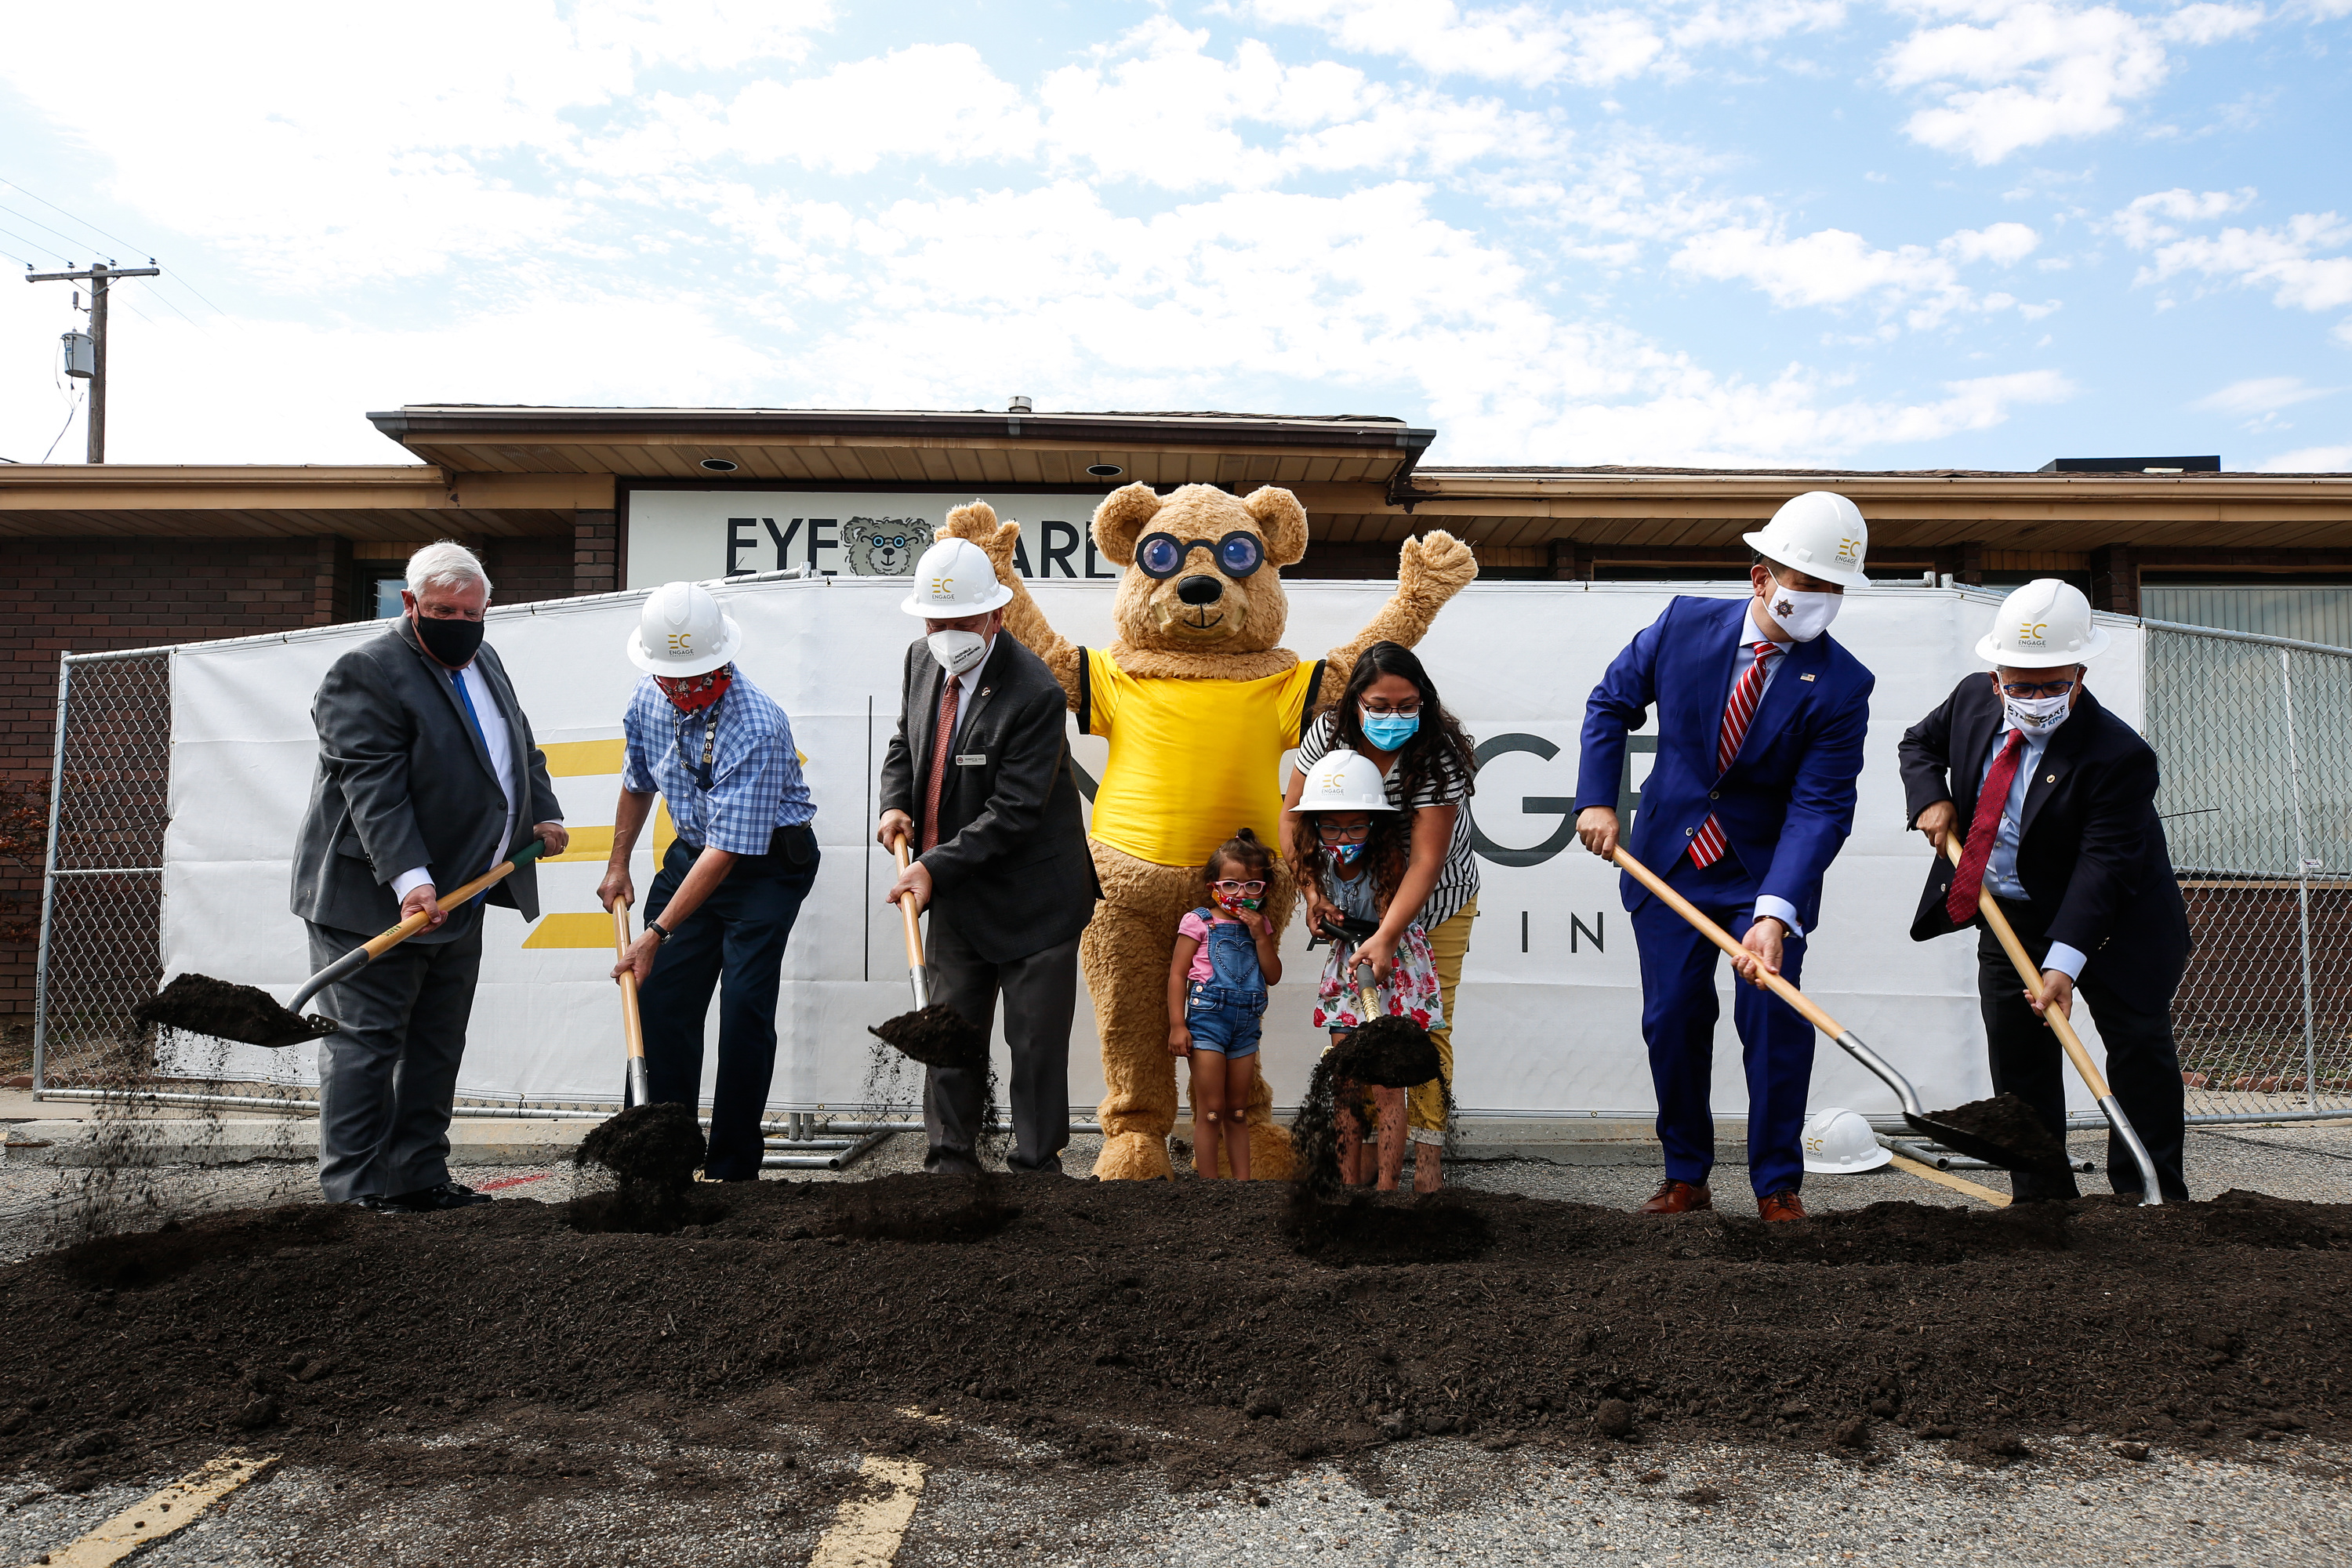 Dignitaries shovel soil during a groundbreaking ceremony for an Eye Care 4 Kids clinic in Midvale on Monday, Aug. 3, 2020.